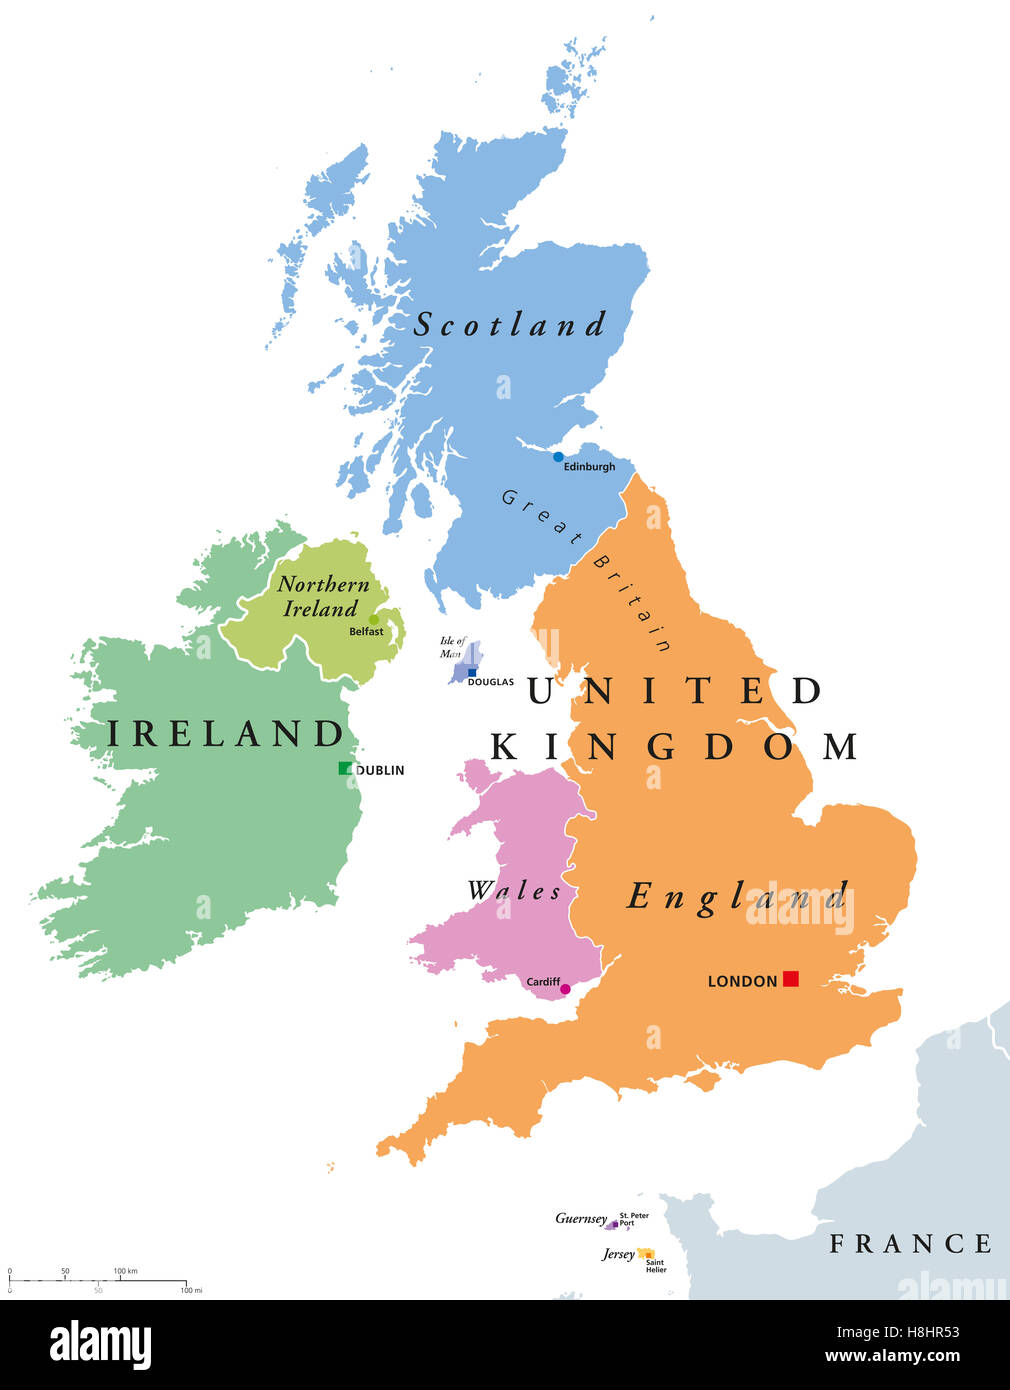 Map Of Ireland England.United Kingdom Countries And Ireland Political Map England Stock